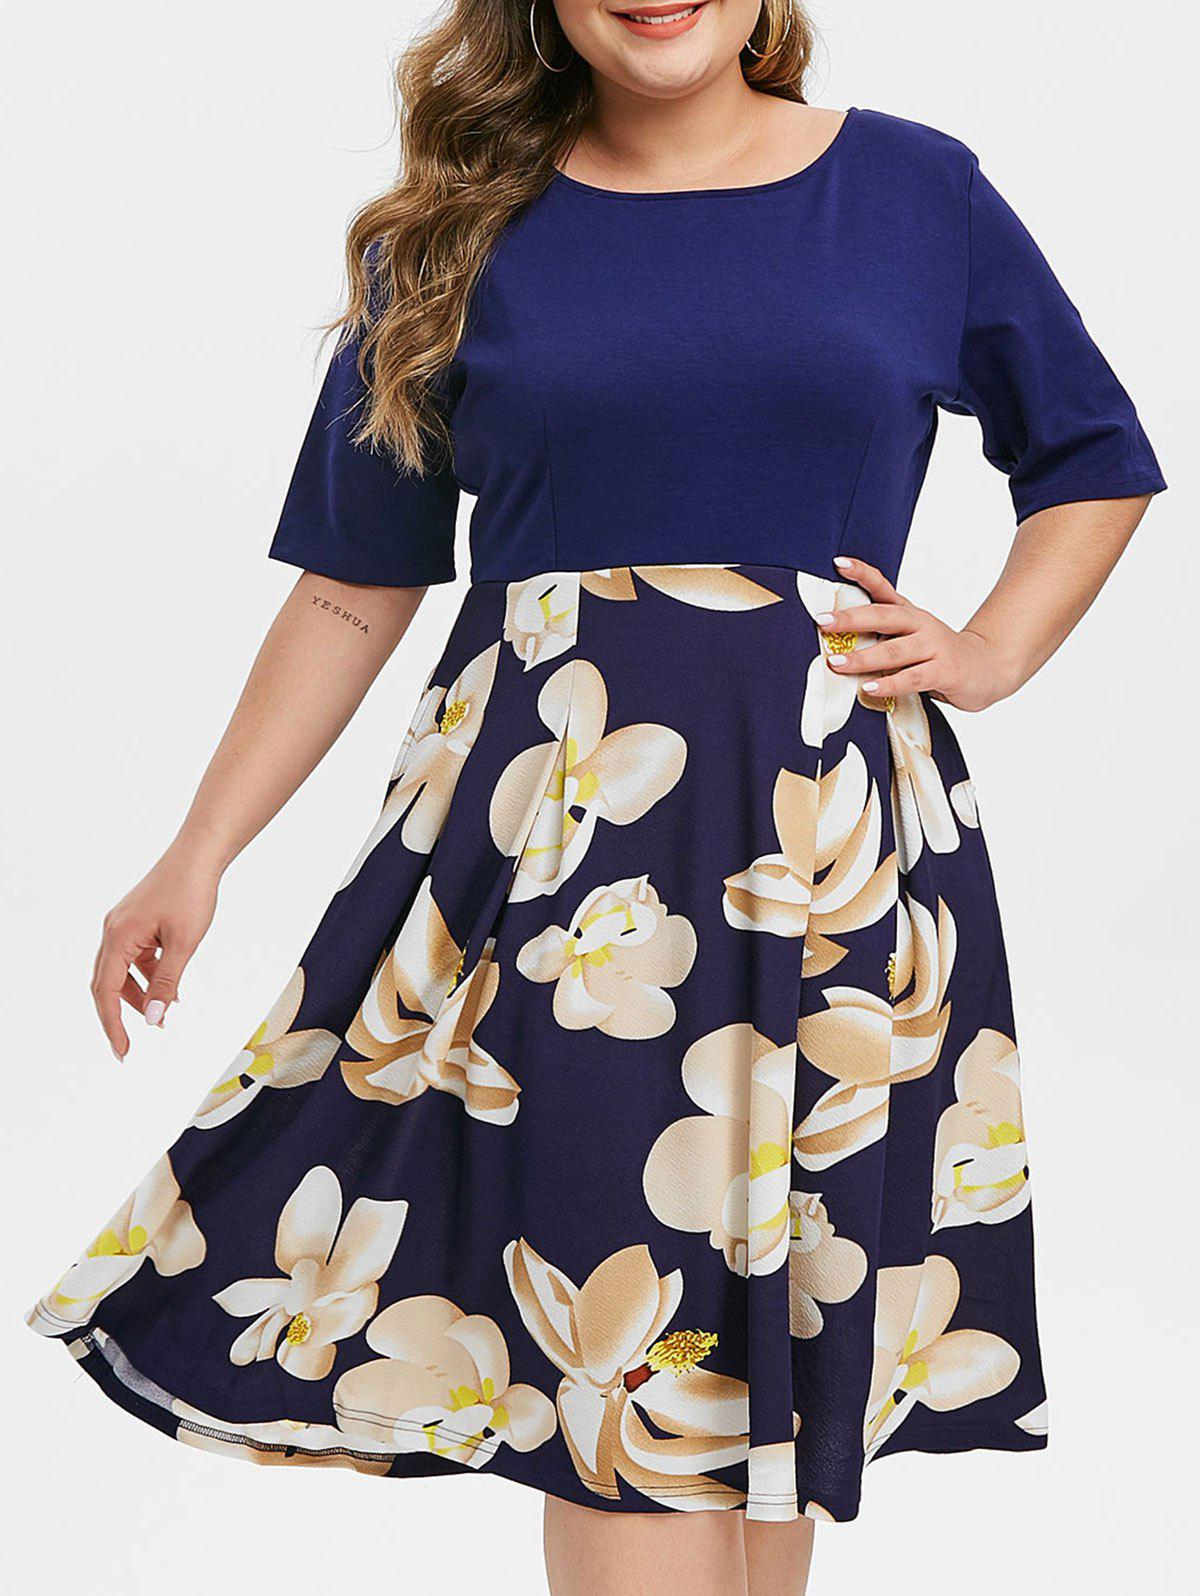 Contrast Floral Back Zipper Short Sleeve Plus Size Dress - COBALT BLUE 4X